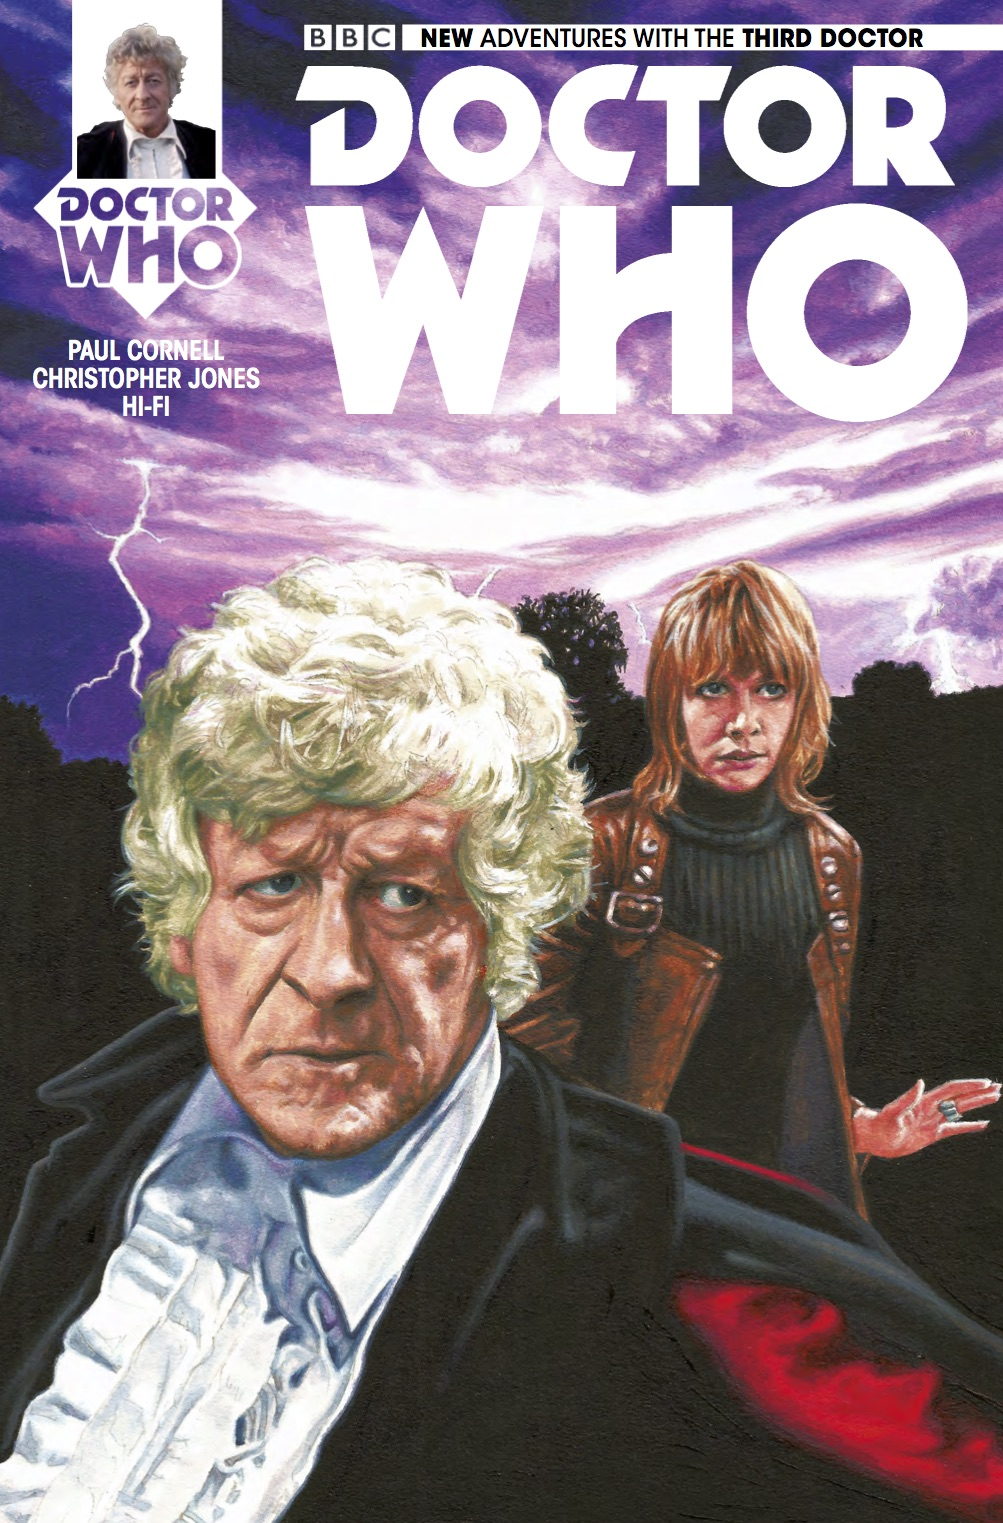 TITAN COMICS - THIRD DOCTOR #4 COVER A BY ANDY WALKER